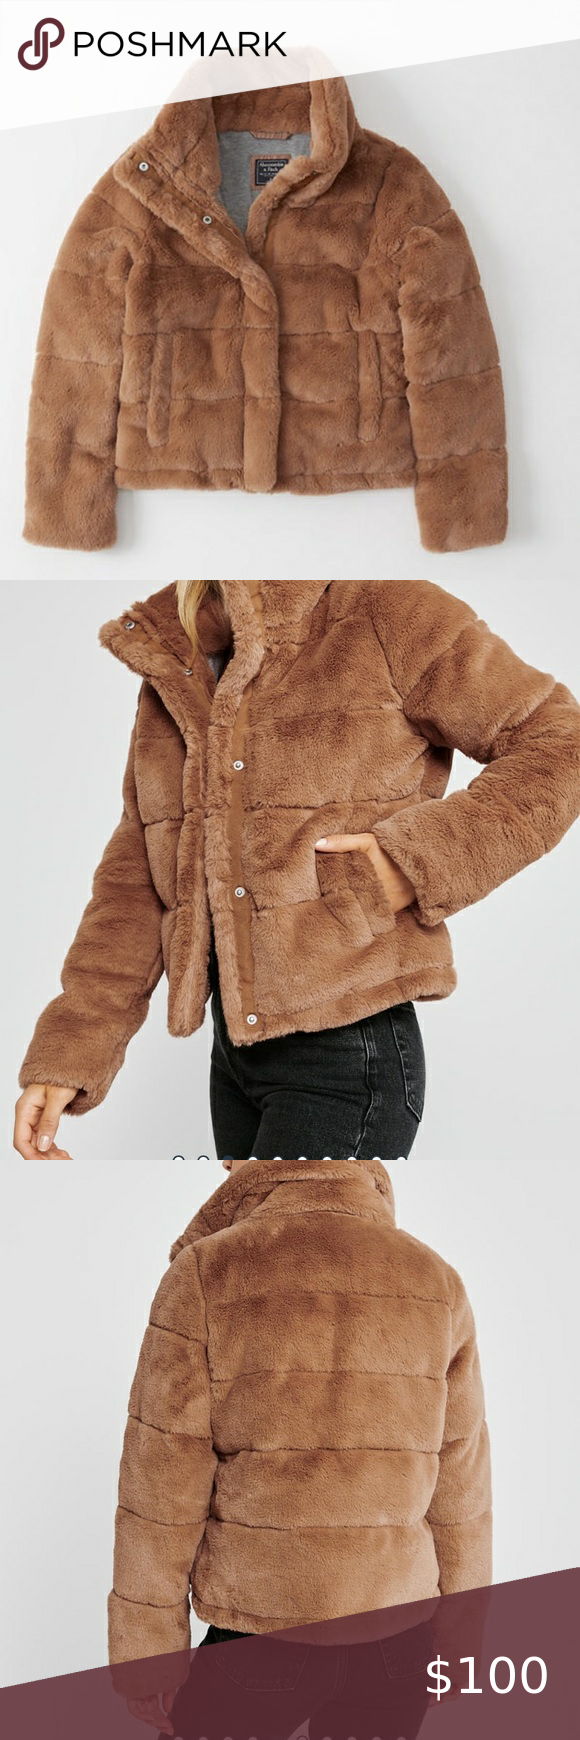 Need Gone Nwot Abercrombie Fitch Puffer Faux Fur Puffer Jacket Abercrombie And Fitch Jackets Clothes Design [ 1740 x 580 Pixel ]